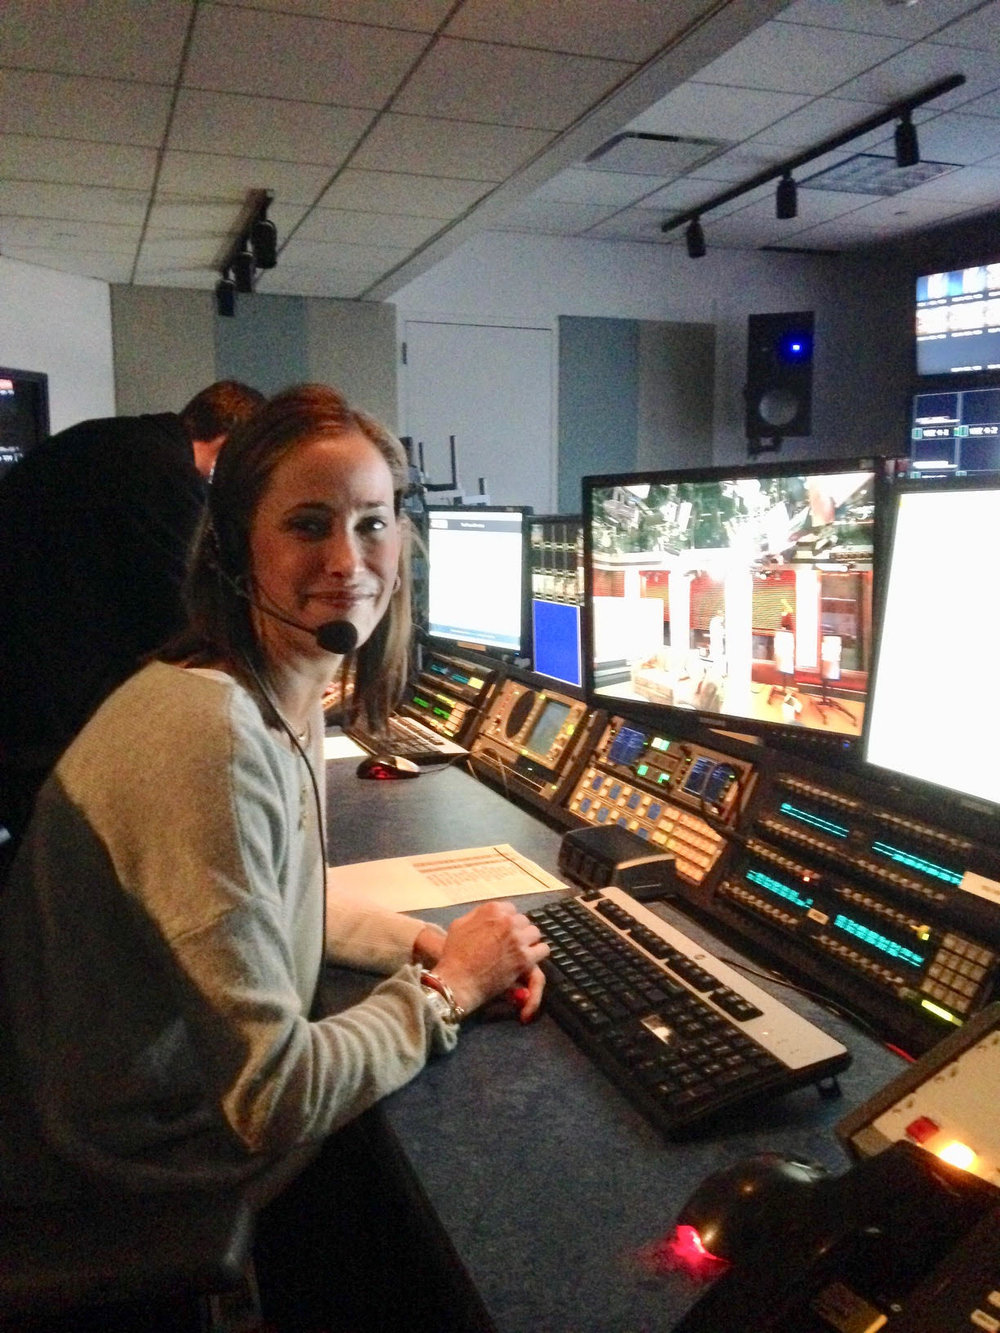 A day in my former life... - Me, in a control room as the Senior Producer of a national news show